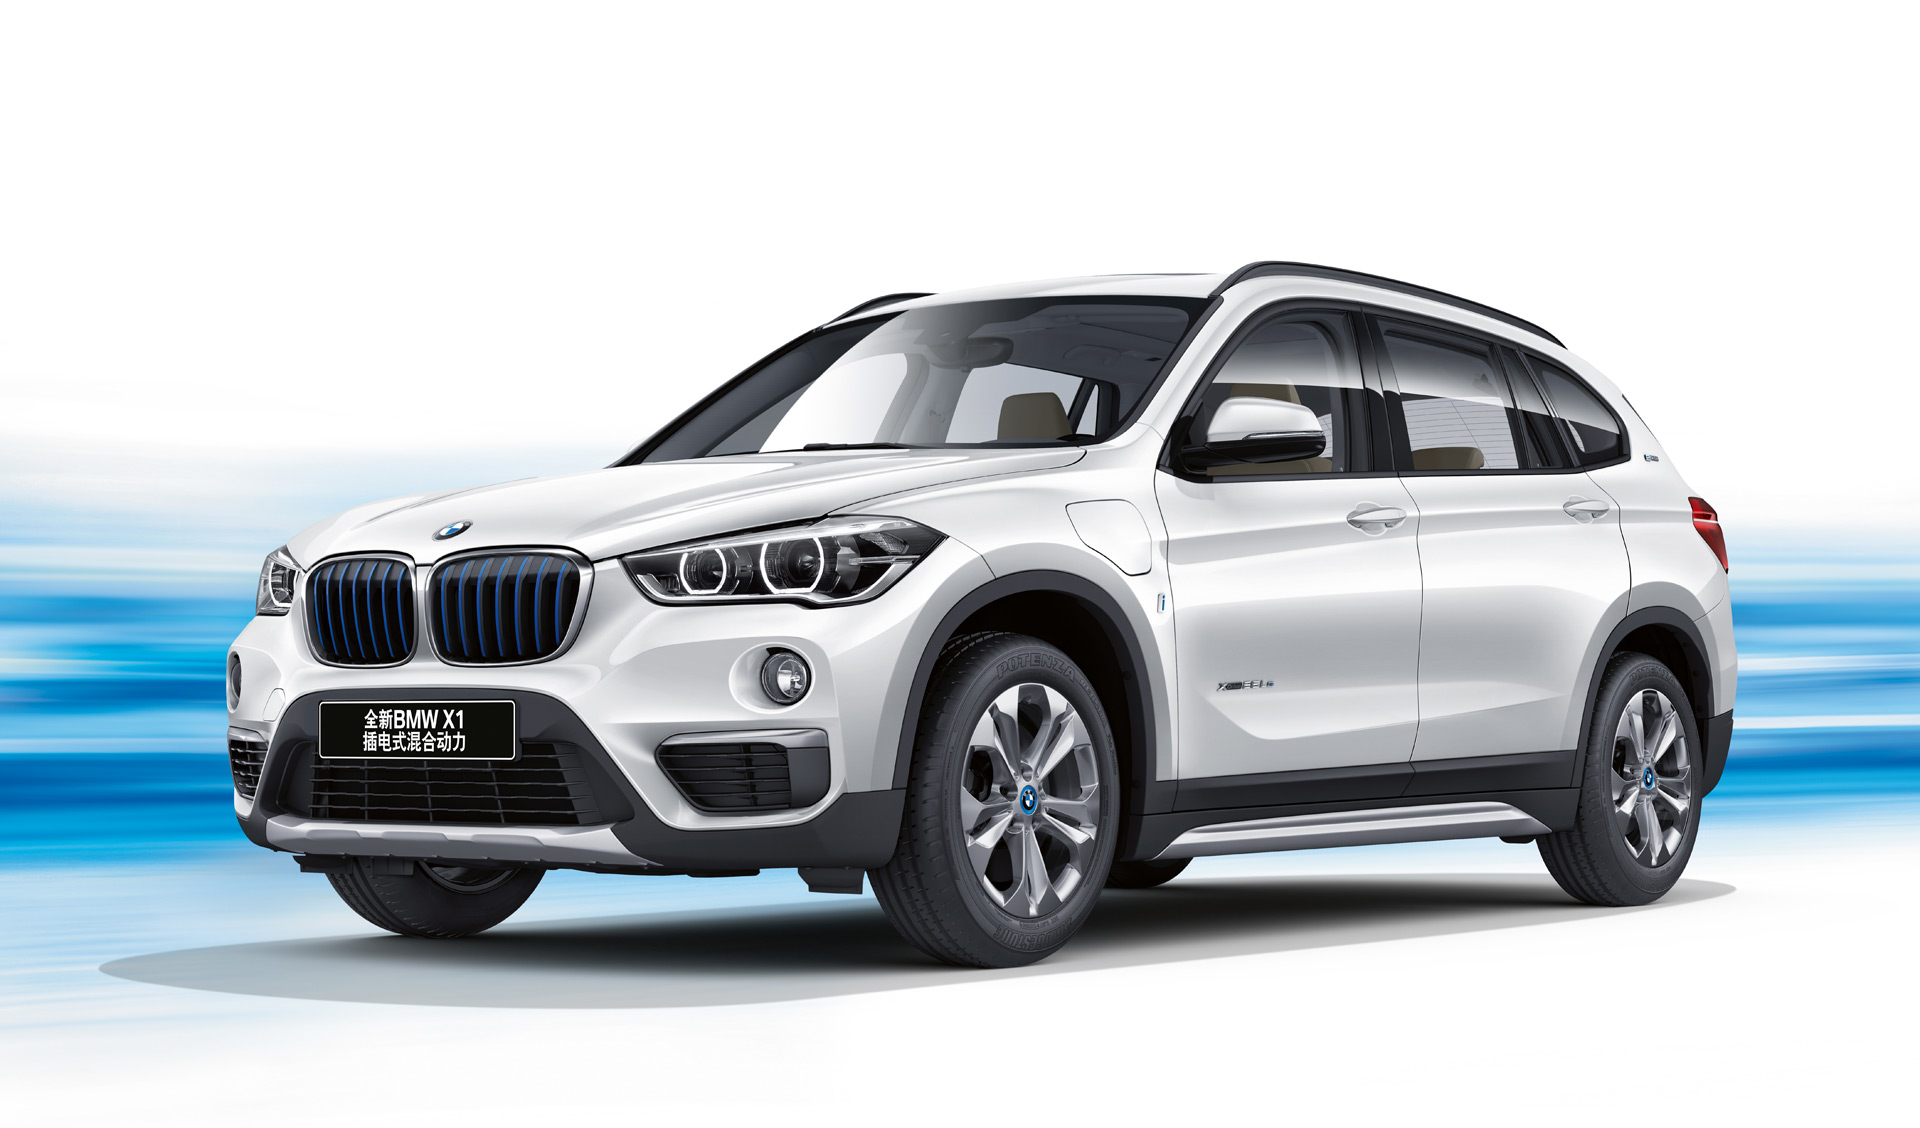 Best Hybrid Suv Bmw X1 Plug In Hybrid Suv For China Only Not North America